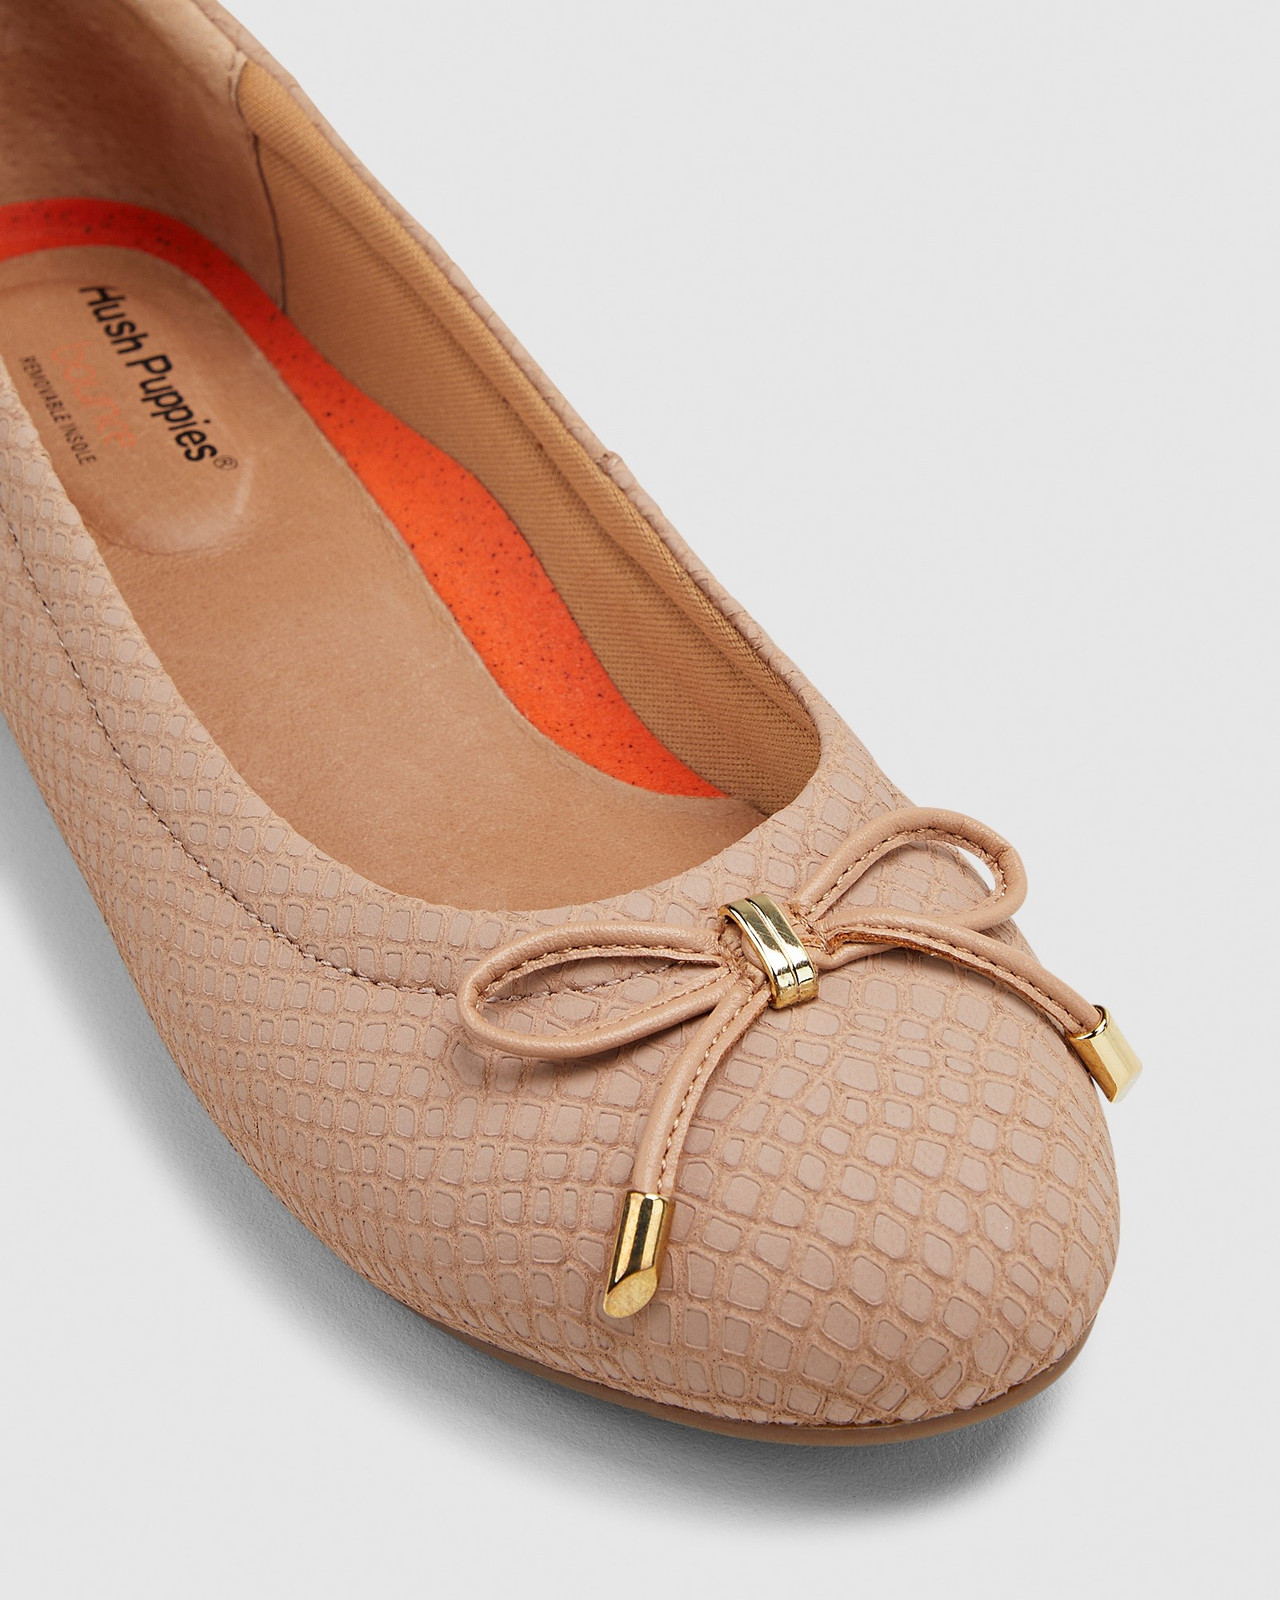 Hush Puppies  THE BALLET Nude Snake